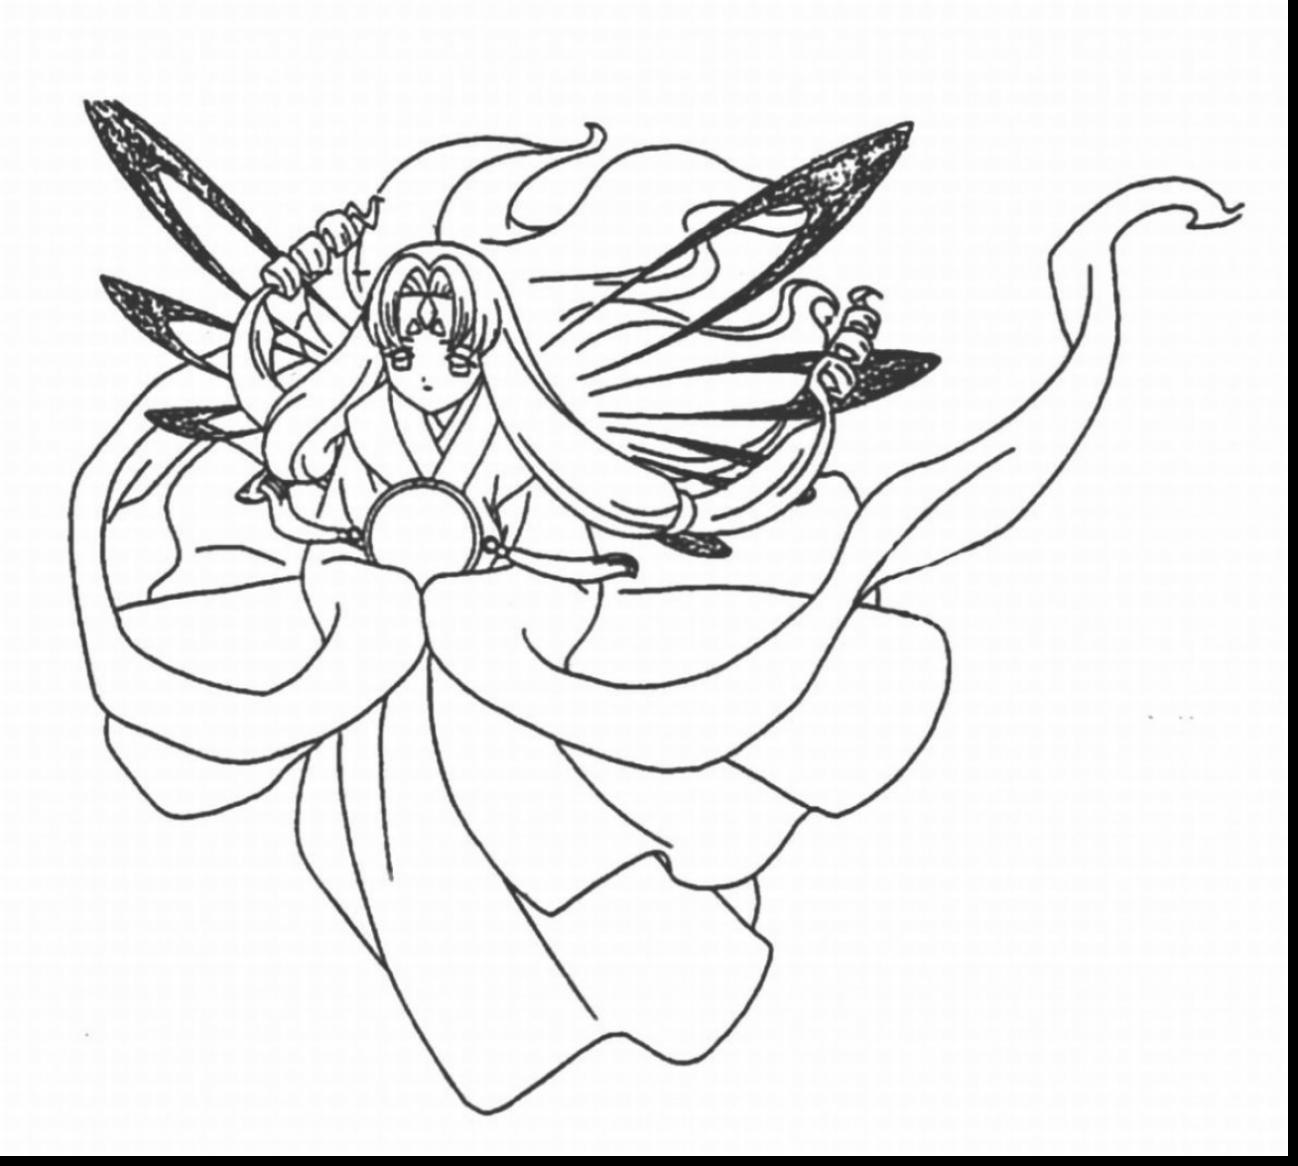 anime coloring pages easy manga coloring pages to download and print for free pages anime coloring easy